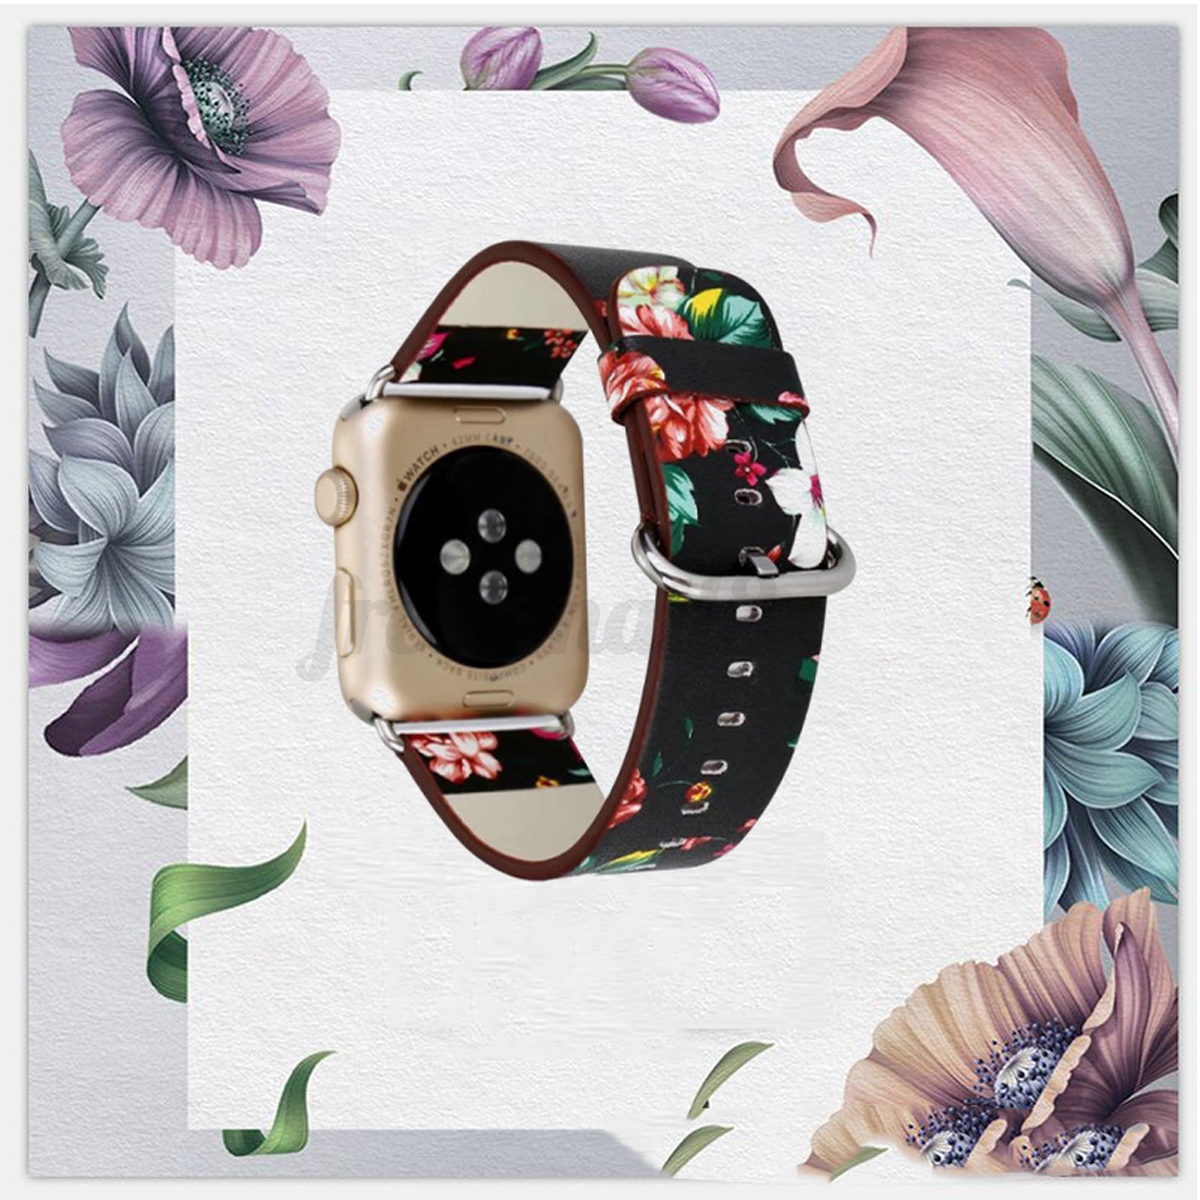 Genuine-Leather-Band-Strap-Wrist-Bracelet-Watchband-For-Apple-Watch-1-2-3-42mm